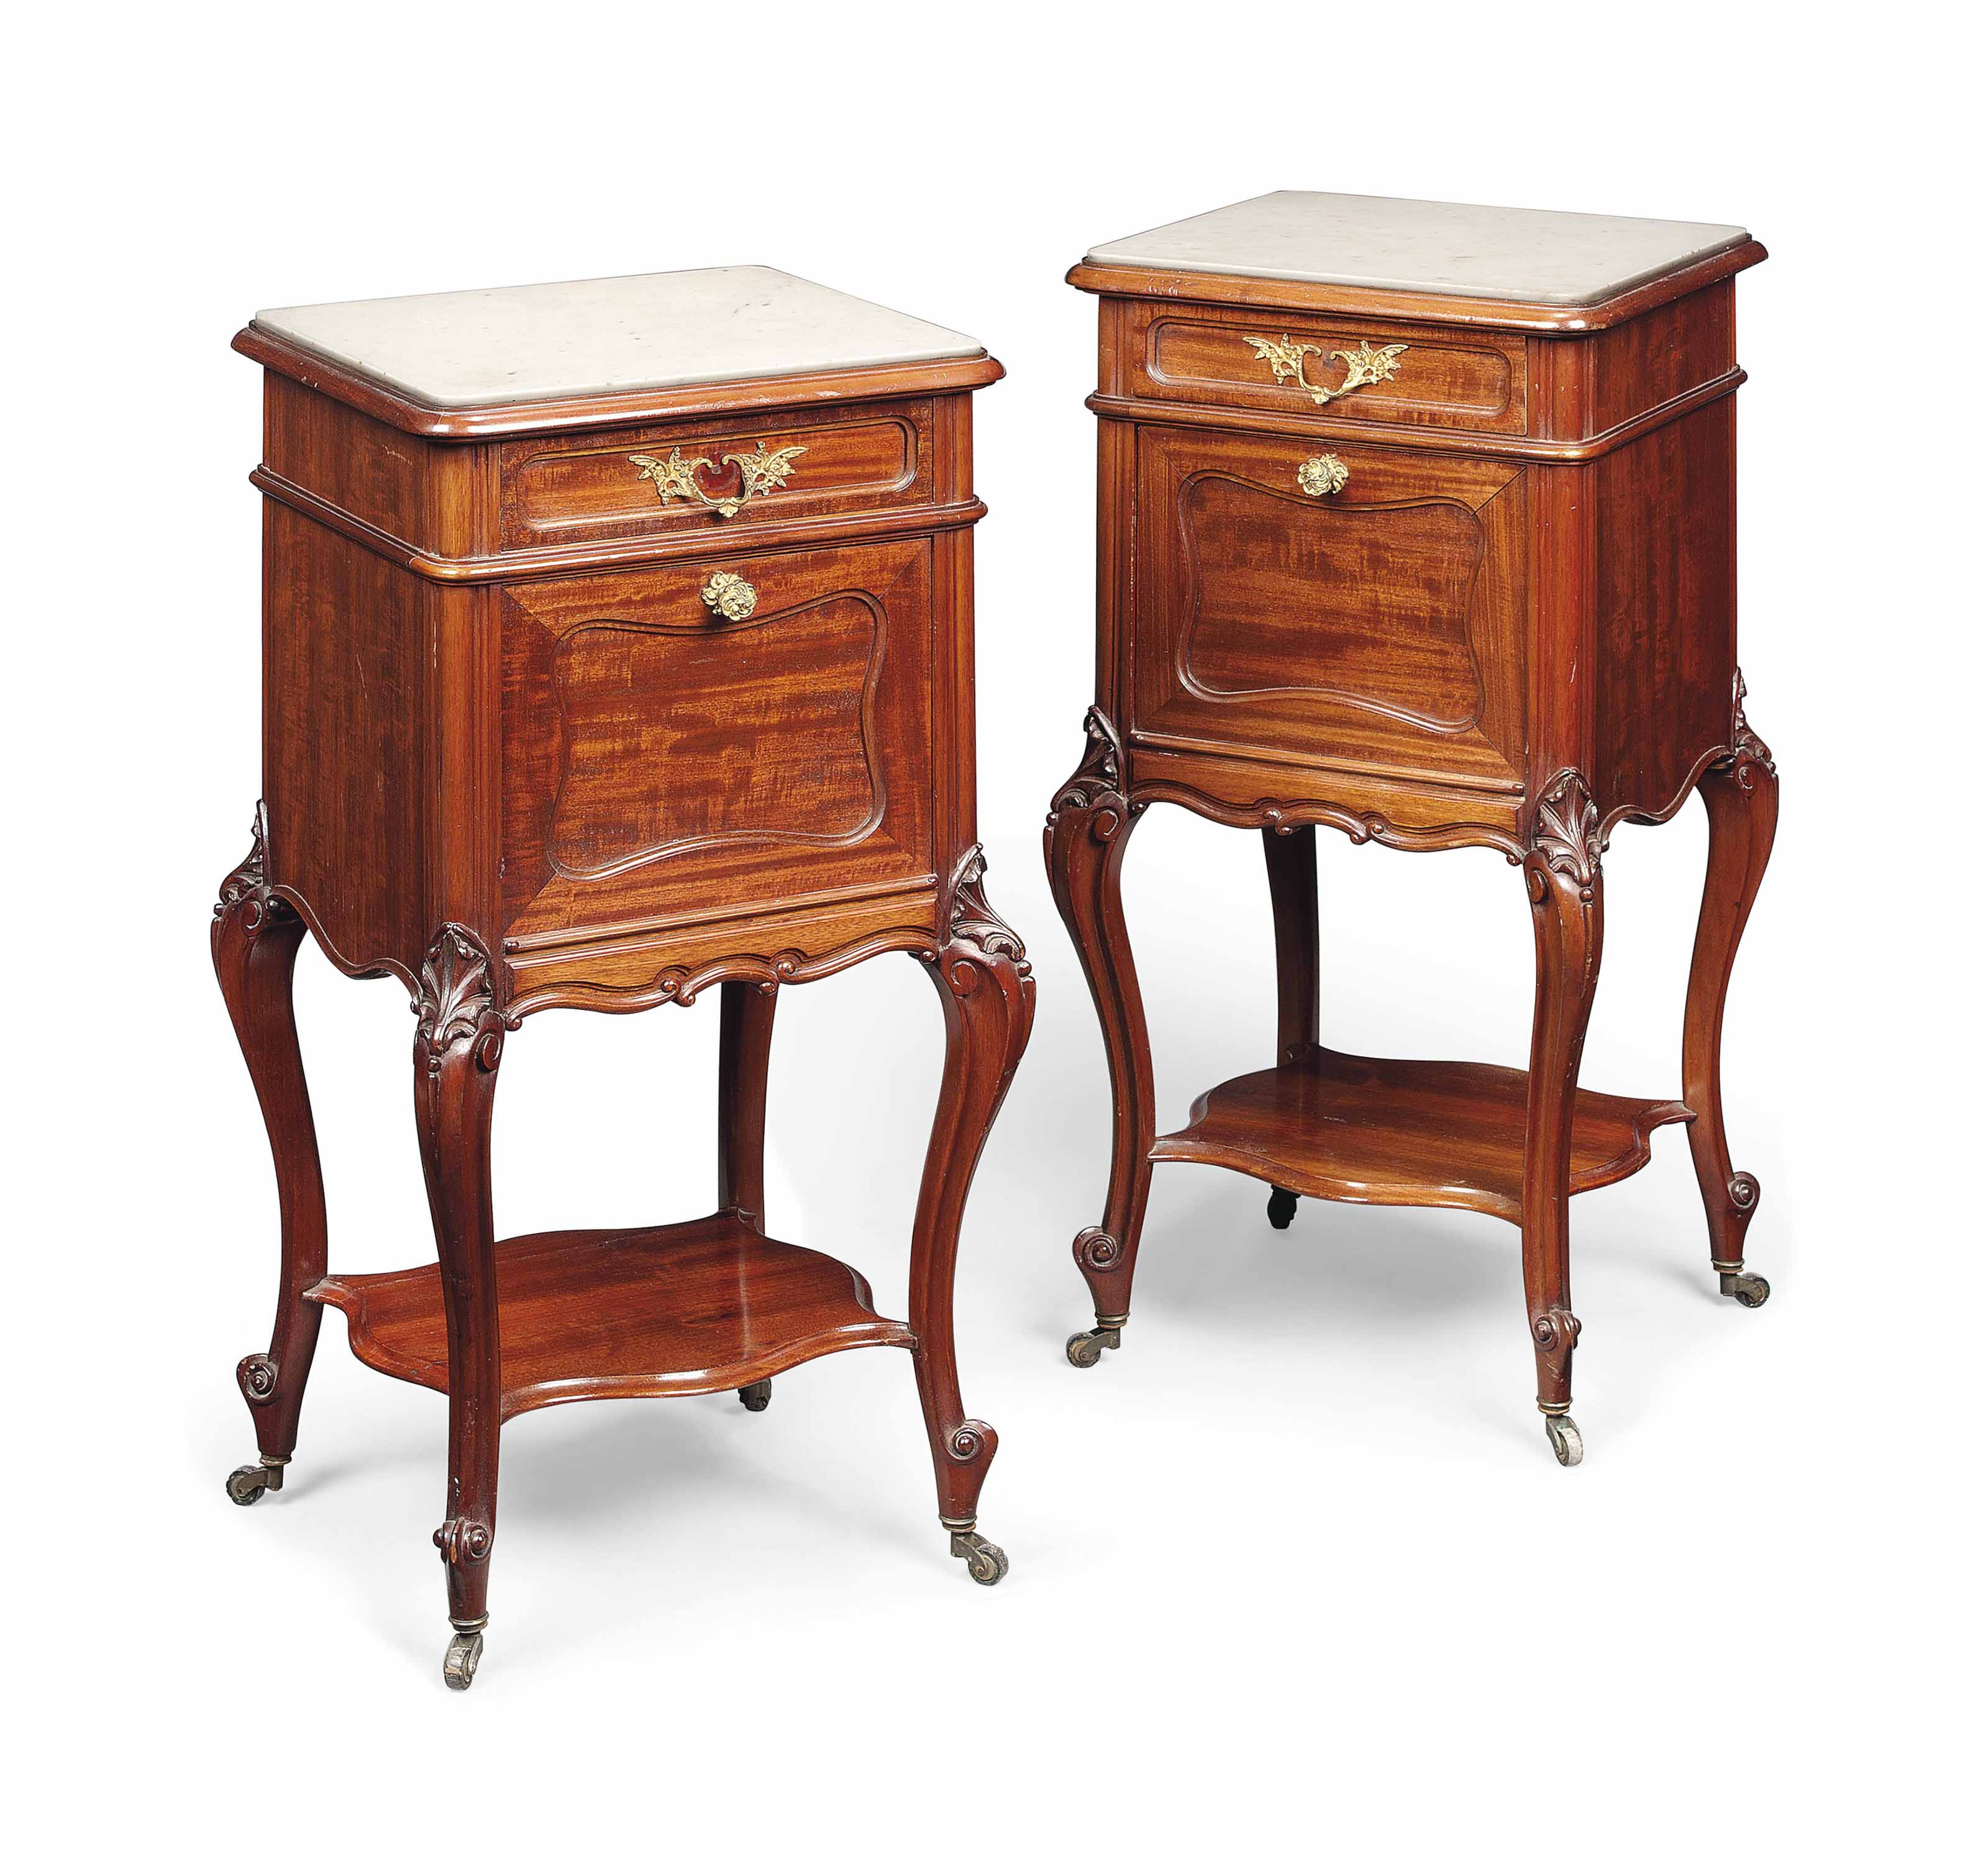 A PAIR OF FRENCH MAHOGANY BEDS